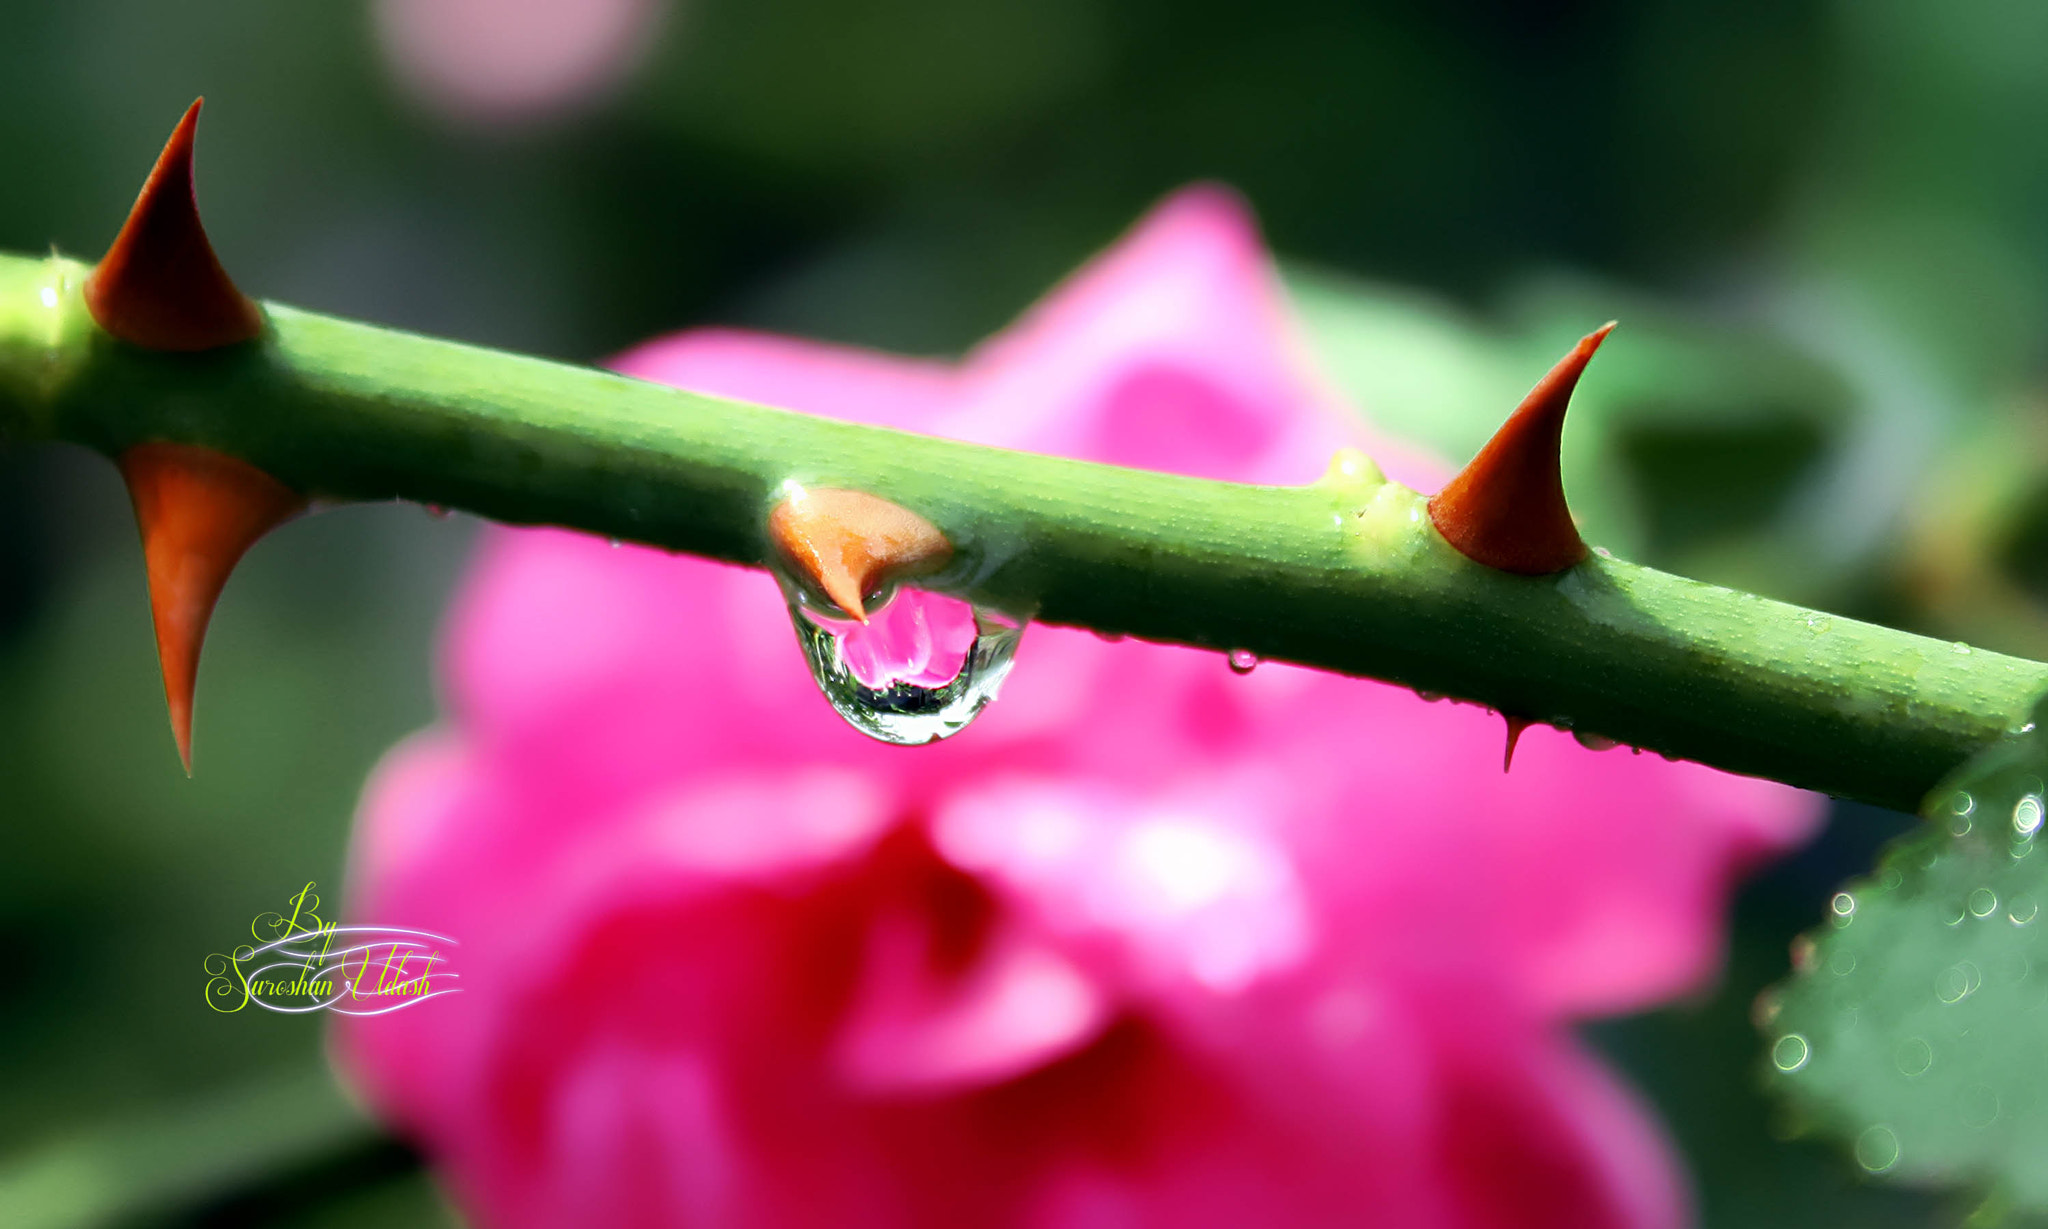 Photograph Thorns, WaterDrops & Rose  by Suroshan Udash on 500px